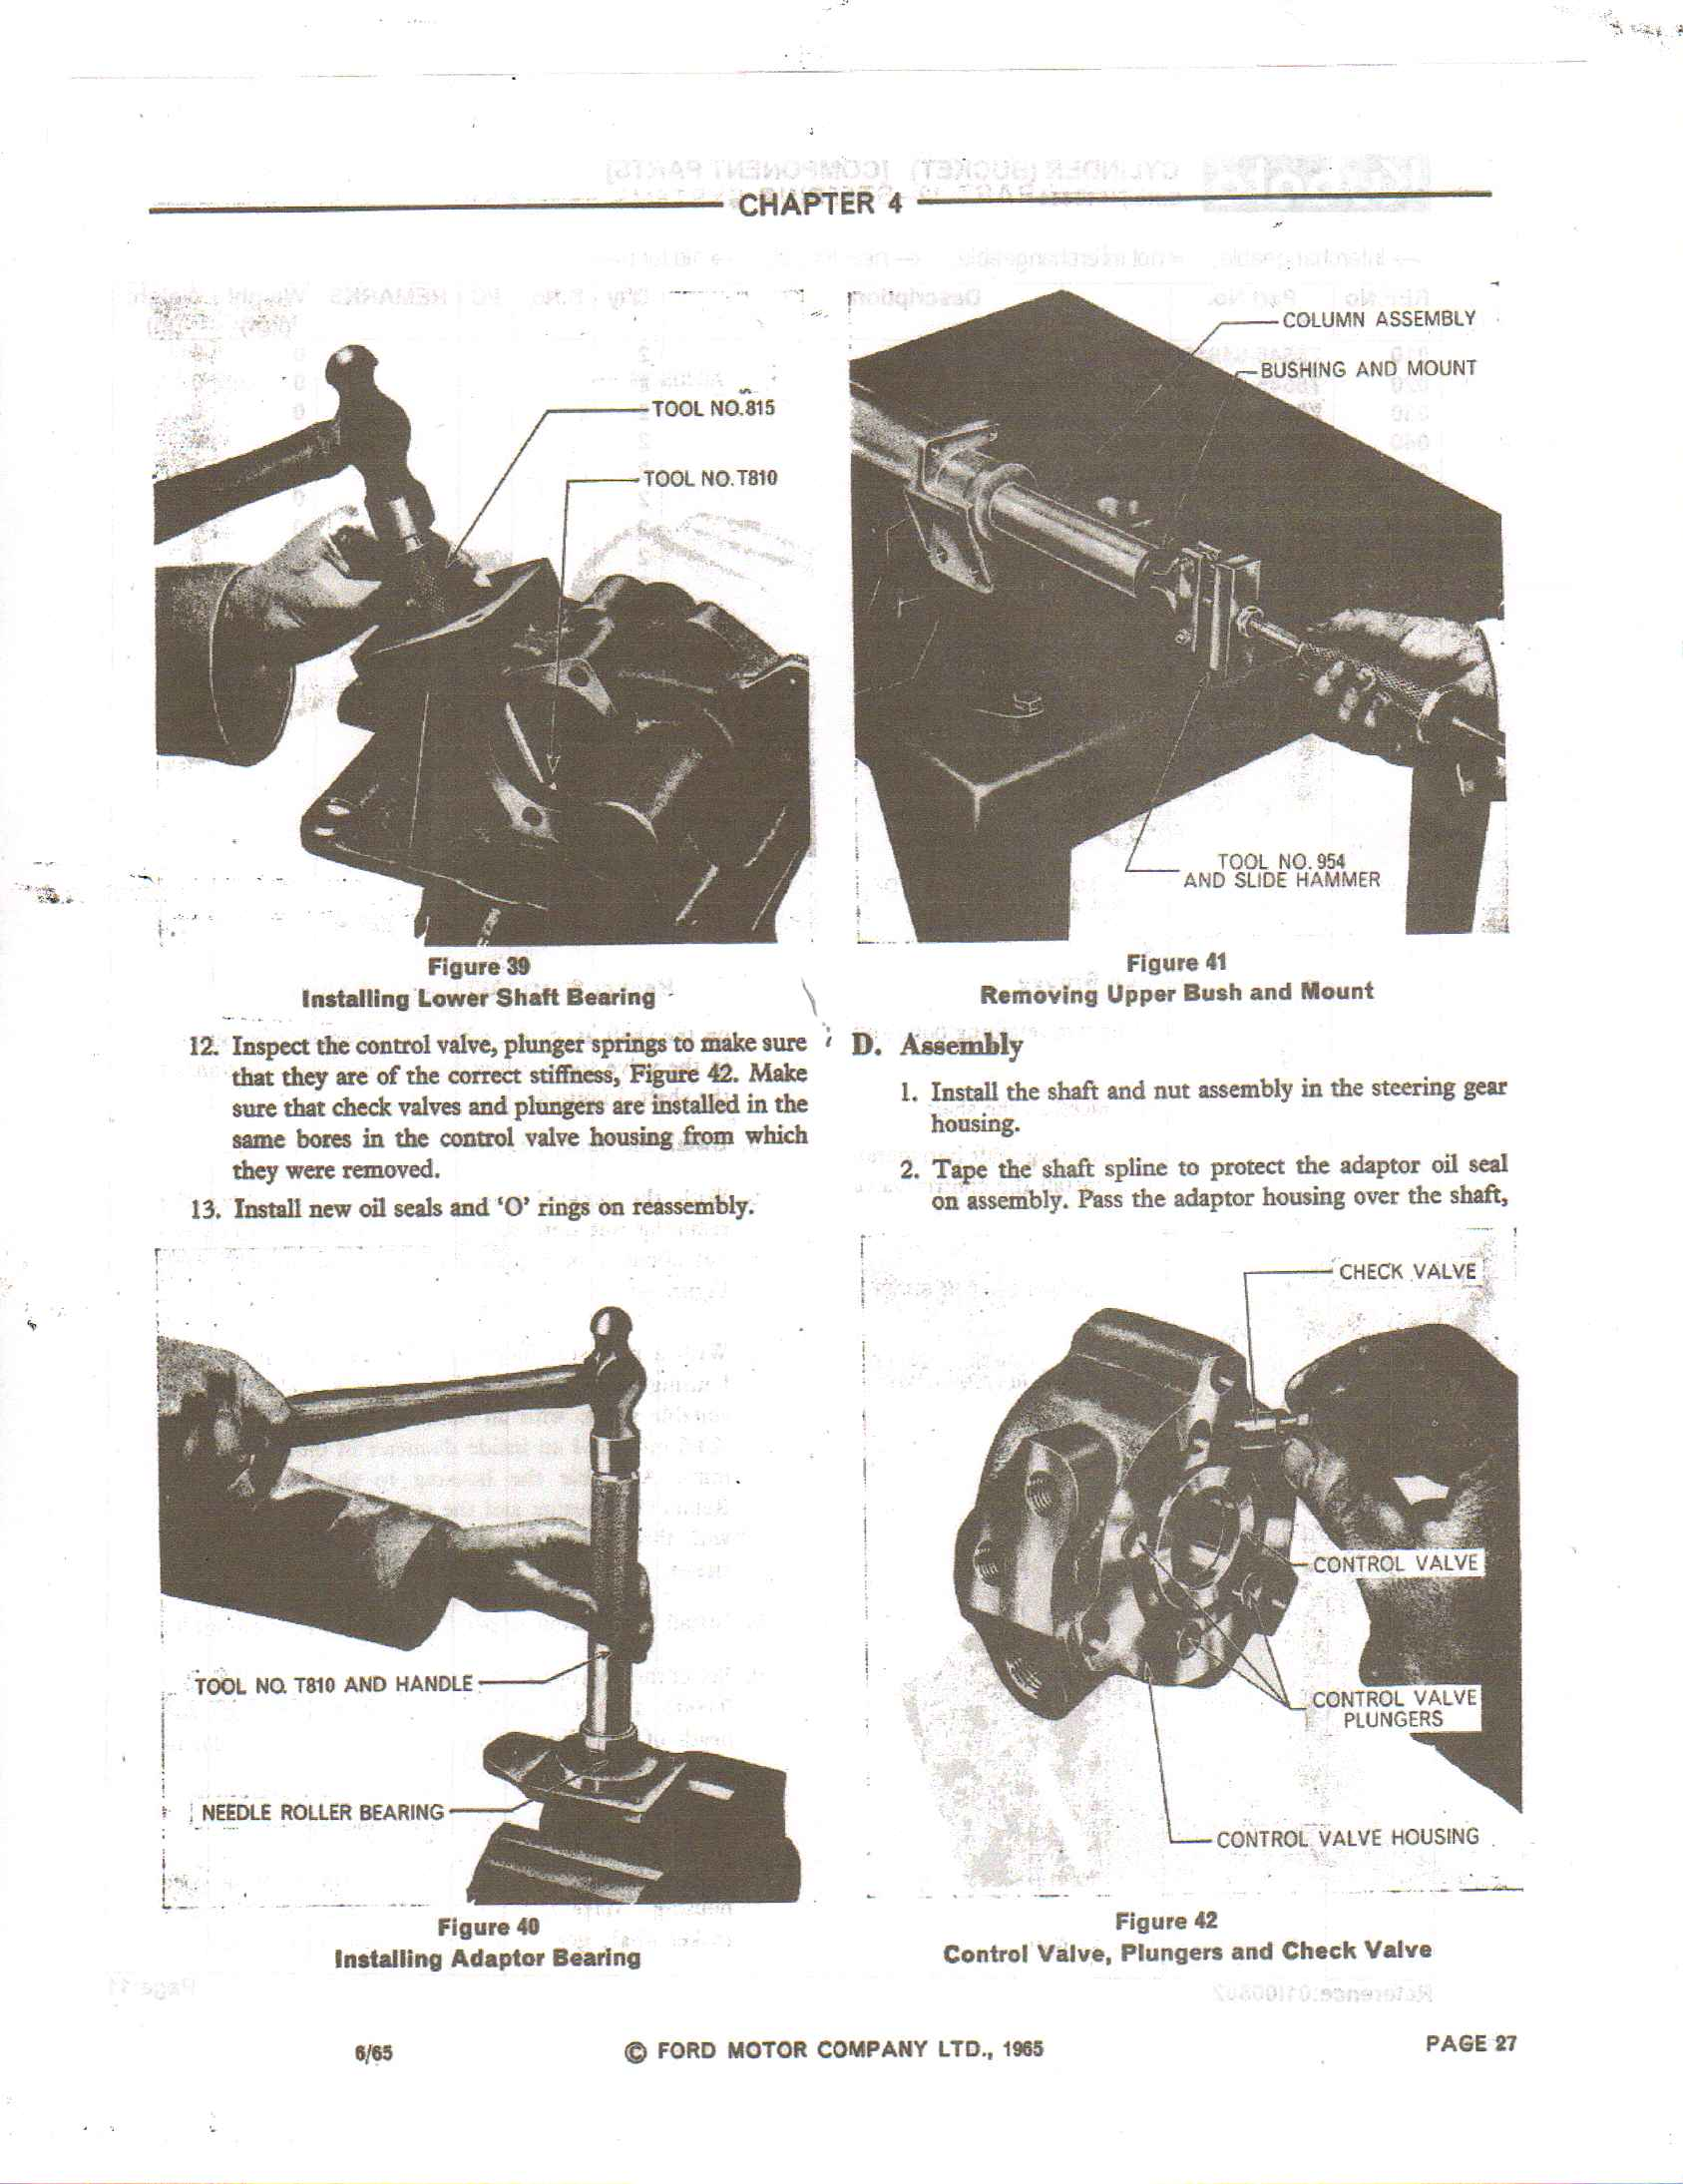 The Seals In Power Steering Of A 4600 Ford Tractor  How Do I Know If I Have The Springs And